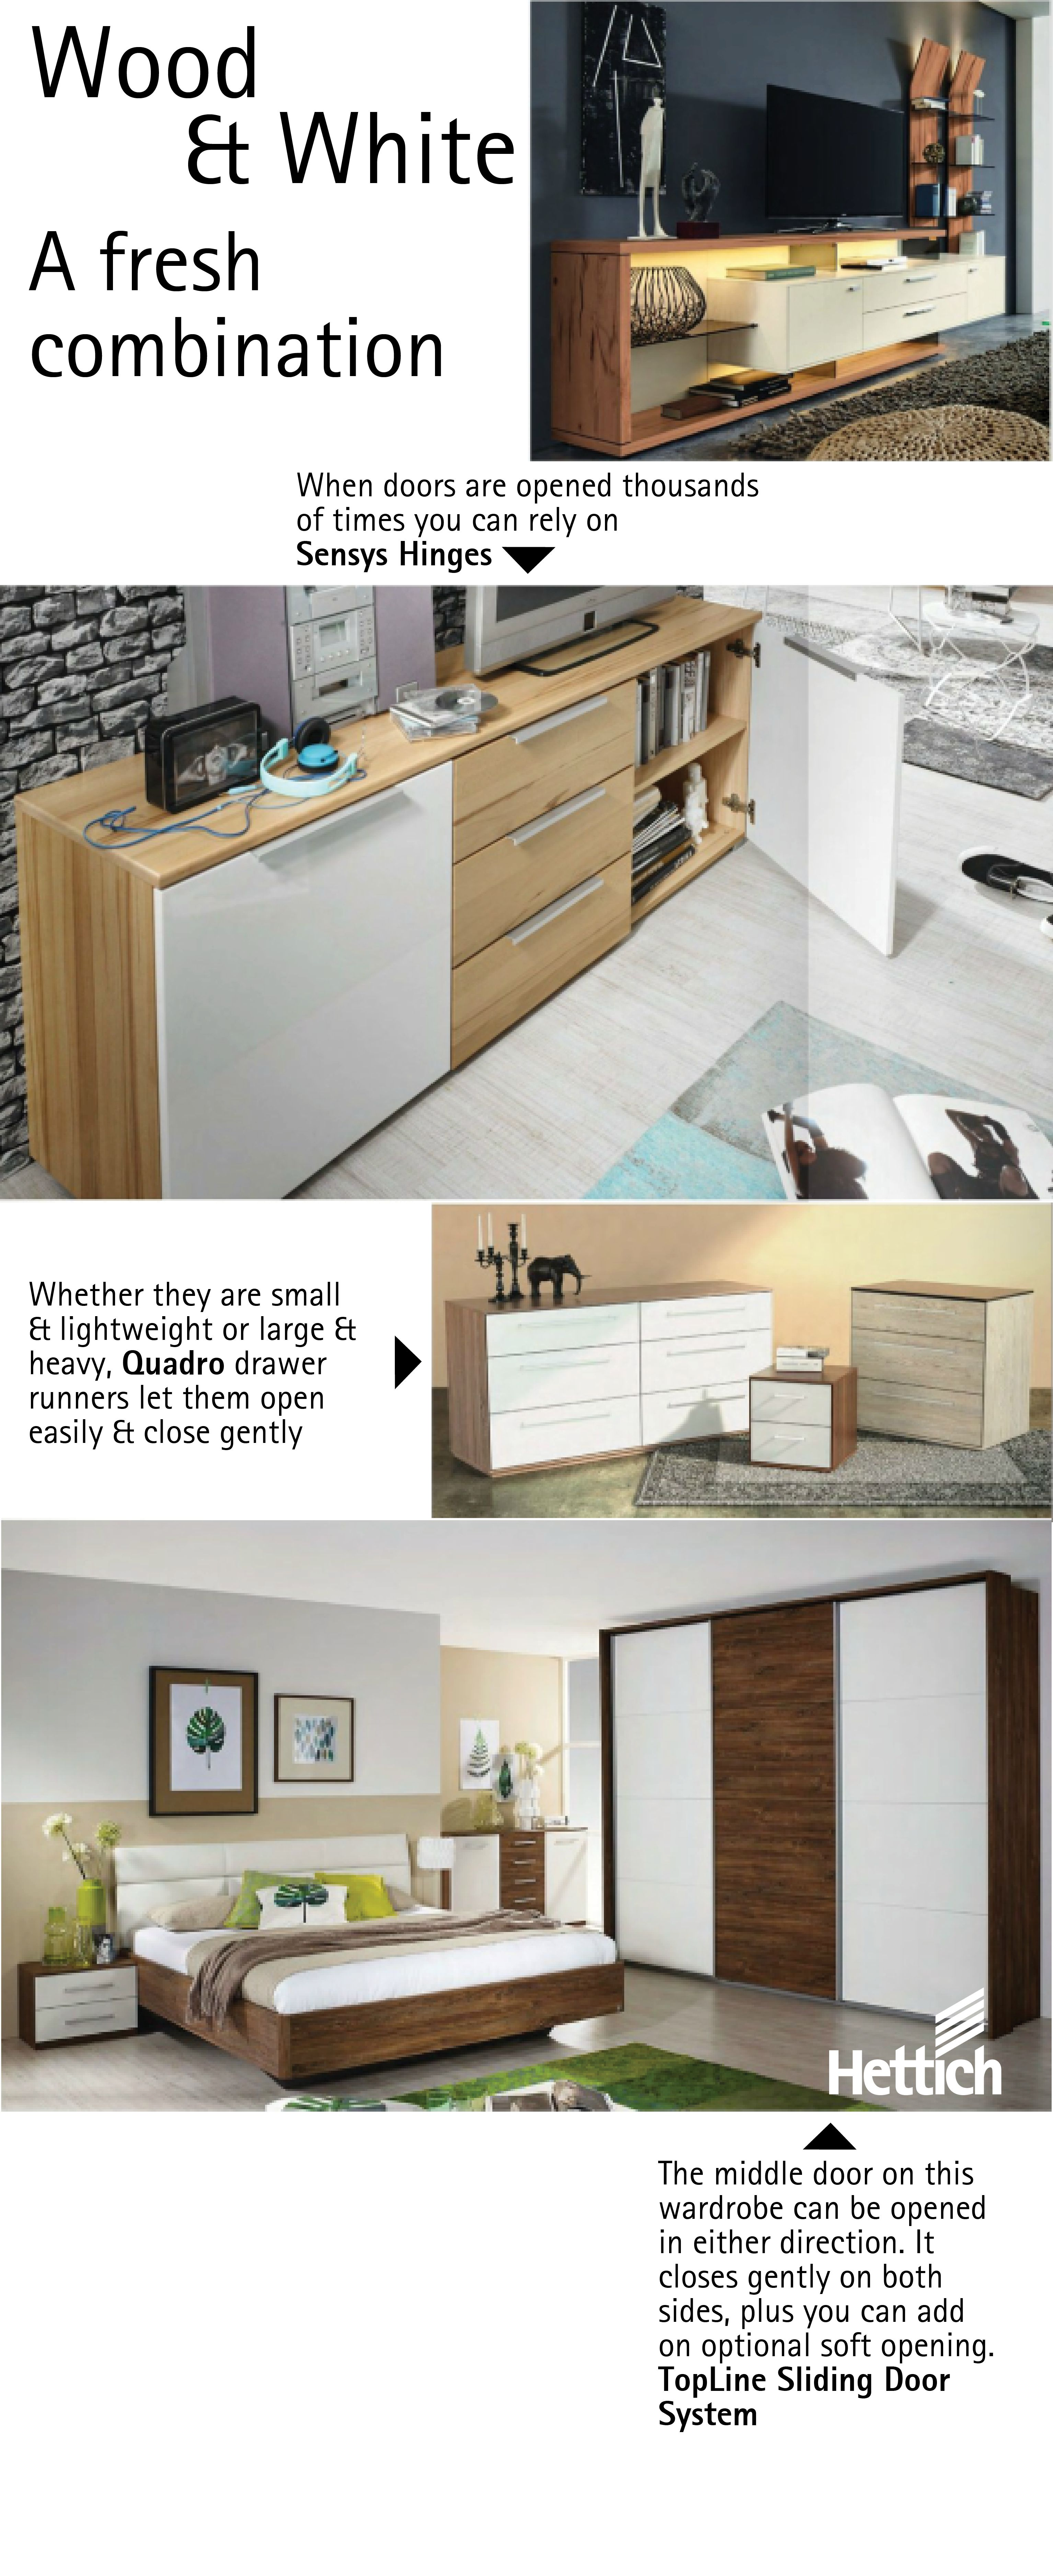 Hettich products can be used all over the house, from